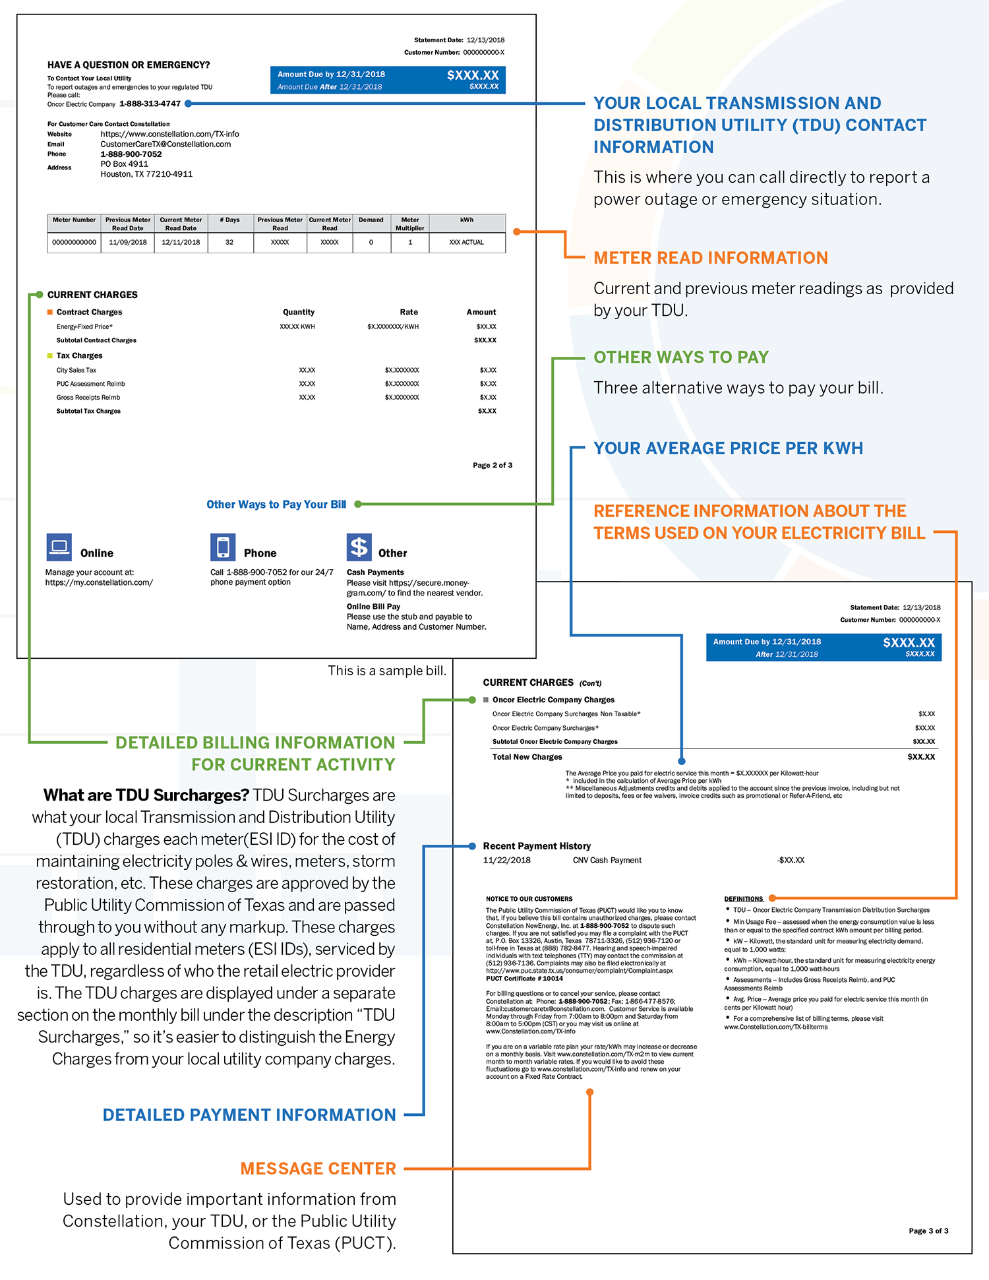 Understanding your Texas Electric Bill from Constellation - pages 2 and 3